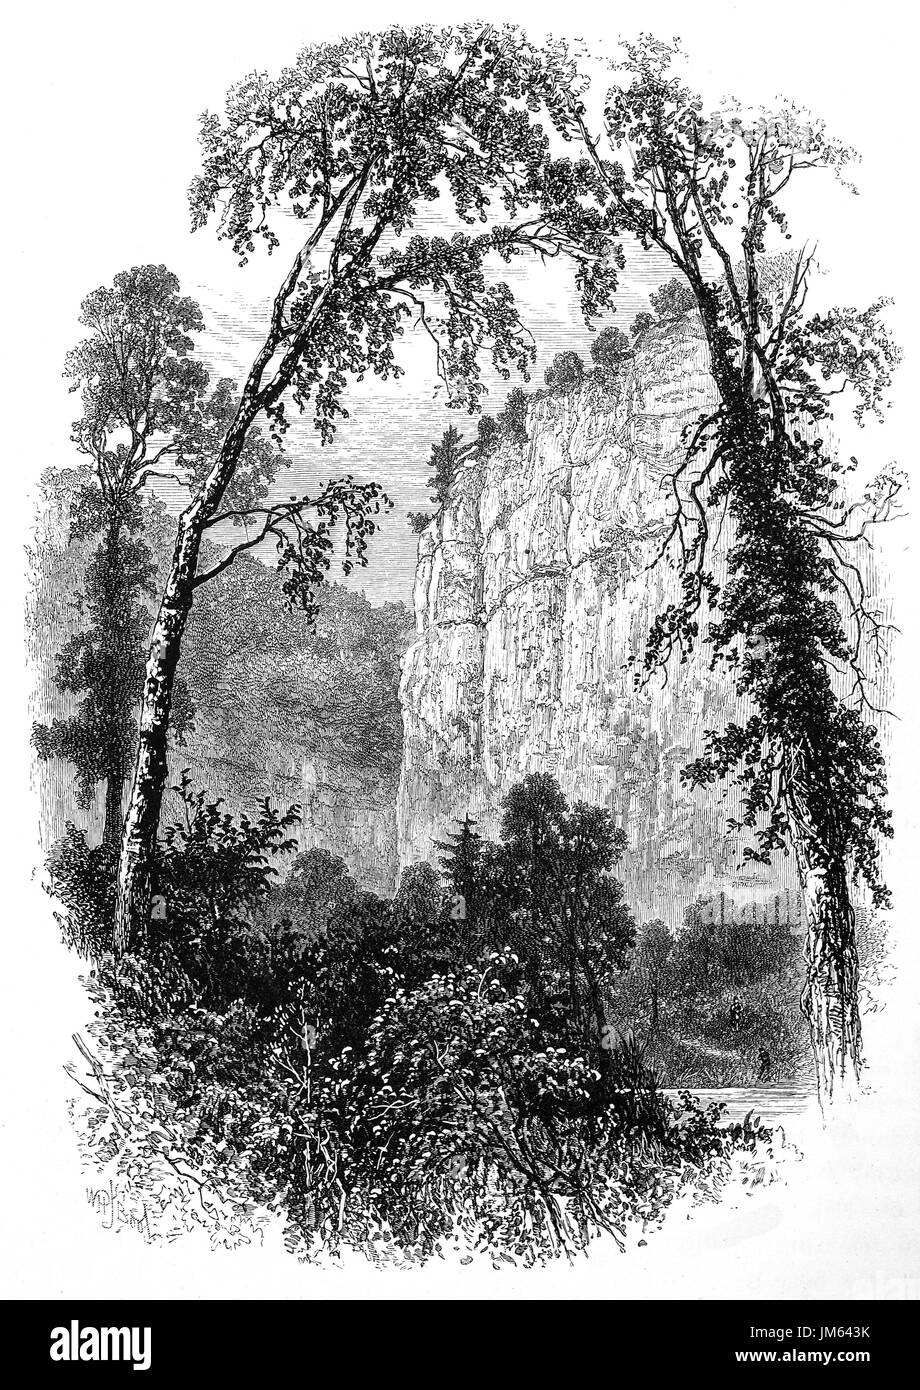 1870: The 300-foot (91 m) high cLiff of Chee Tor in Chee Dale,  northwards from Millers Dale, Derbyshire, England - Stock Image